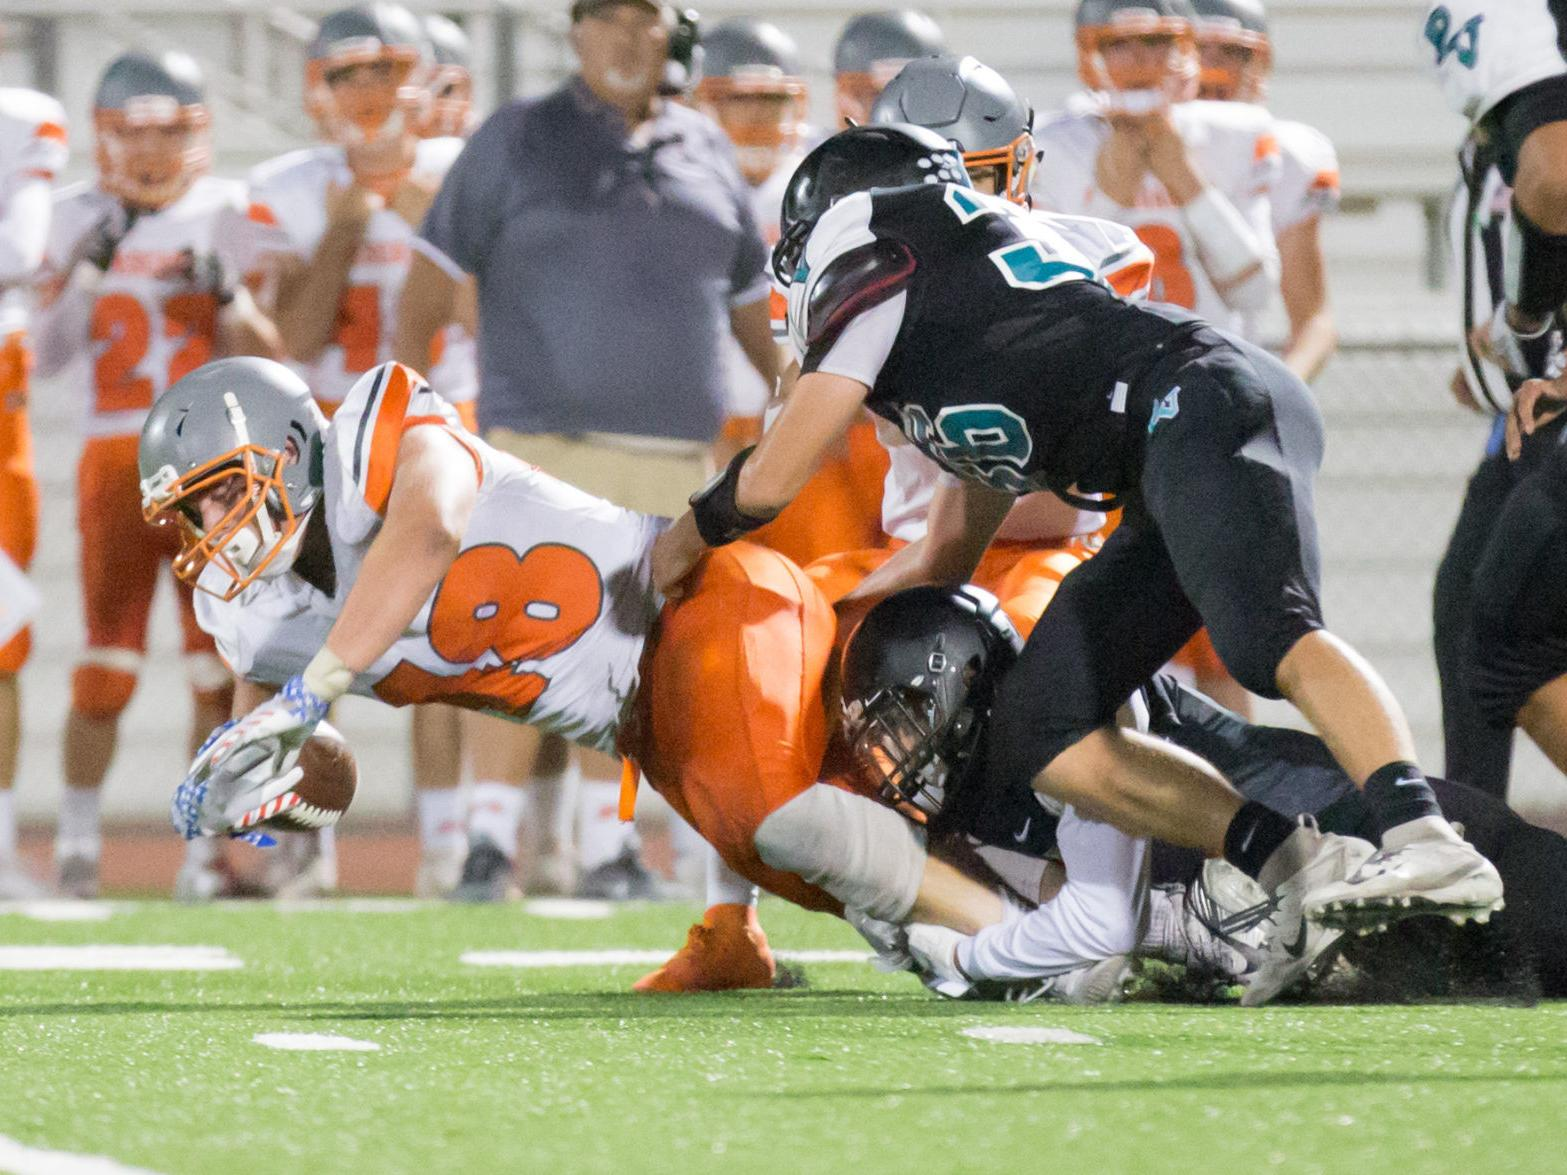 On The 805 Recruiting Trail Atascadero S Seth Robasciotti Motivated By Past San Luis Obispo County Stars Playing College Football Football Santamariatimes Com